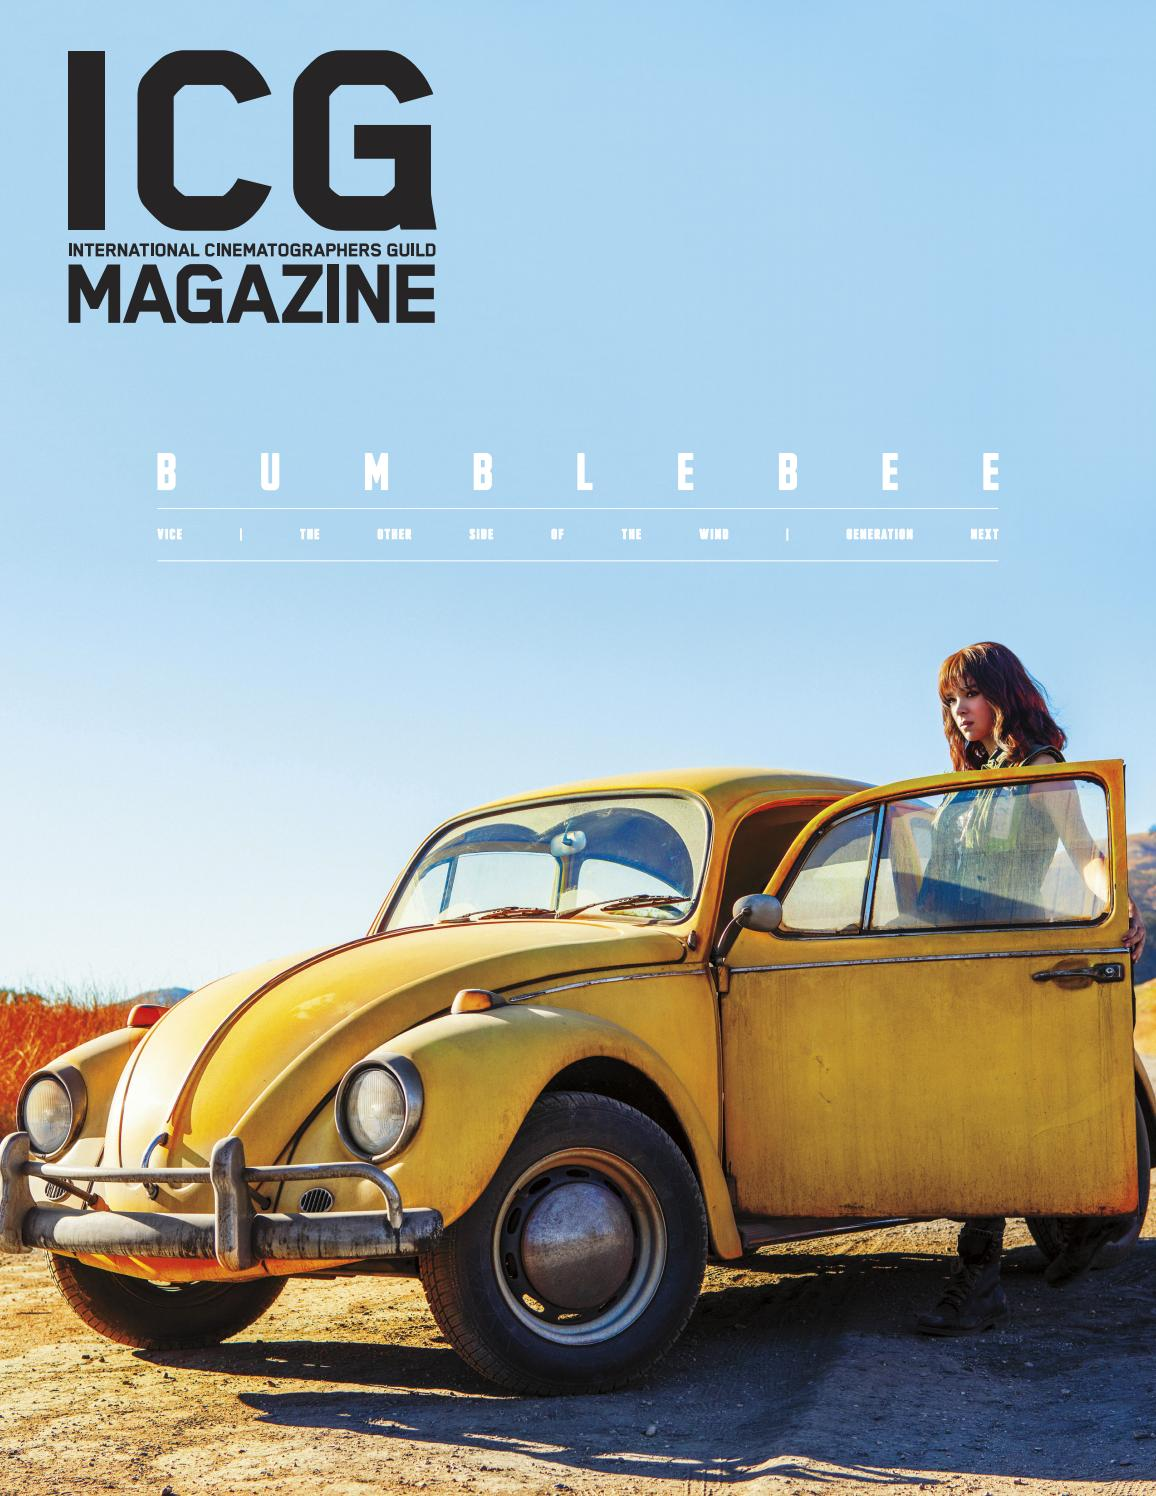 ICG Magazine - December 2018 - The Indie Issue by ICG